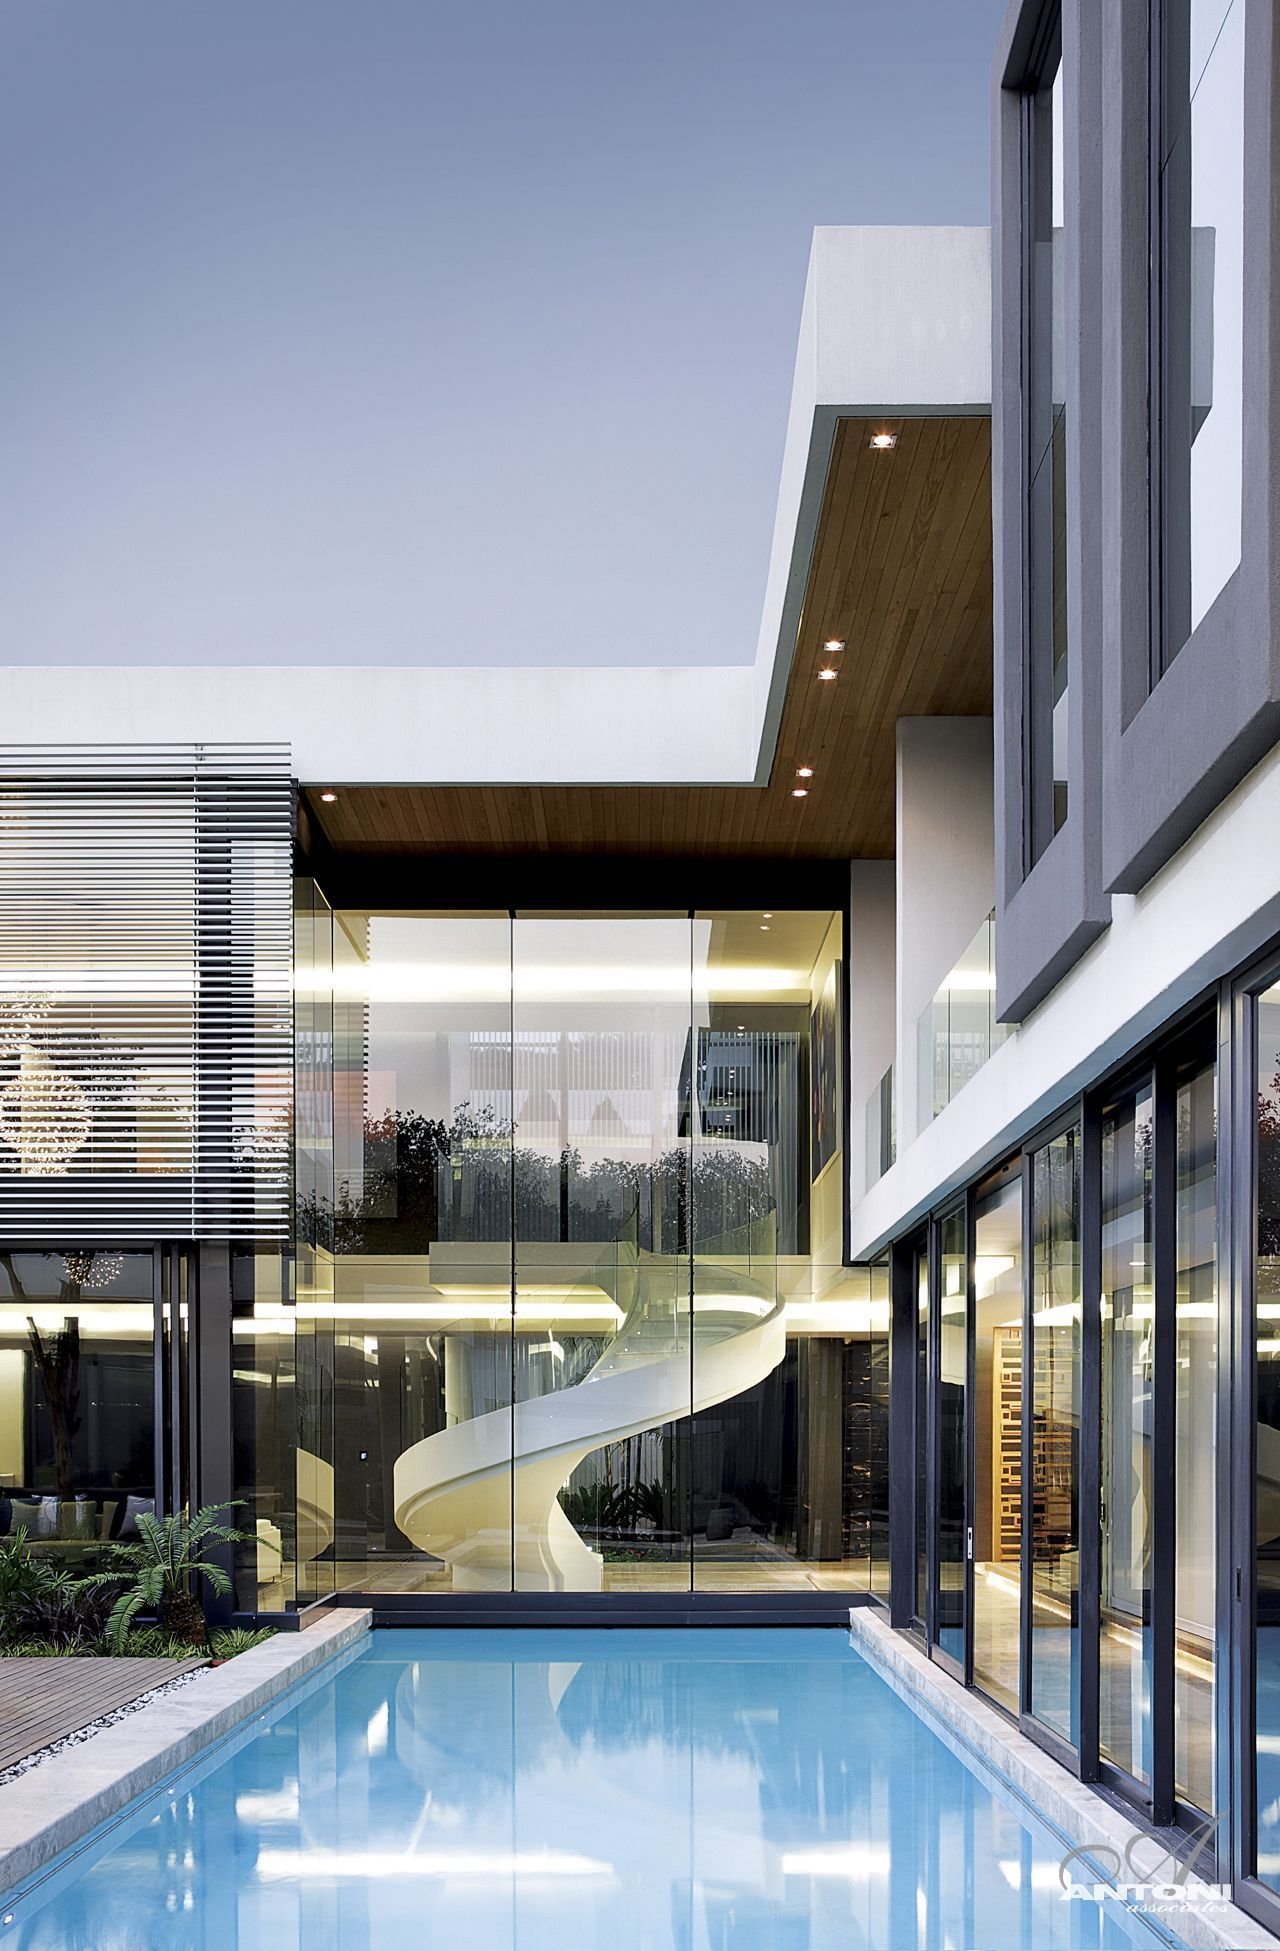 Architecture beast modern mansion with perfect interiors by saota modernarchitecturehouse